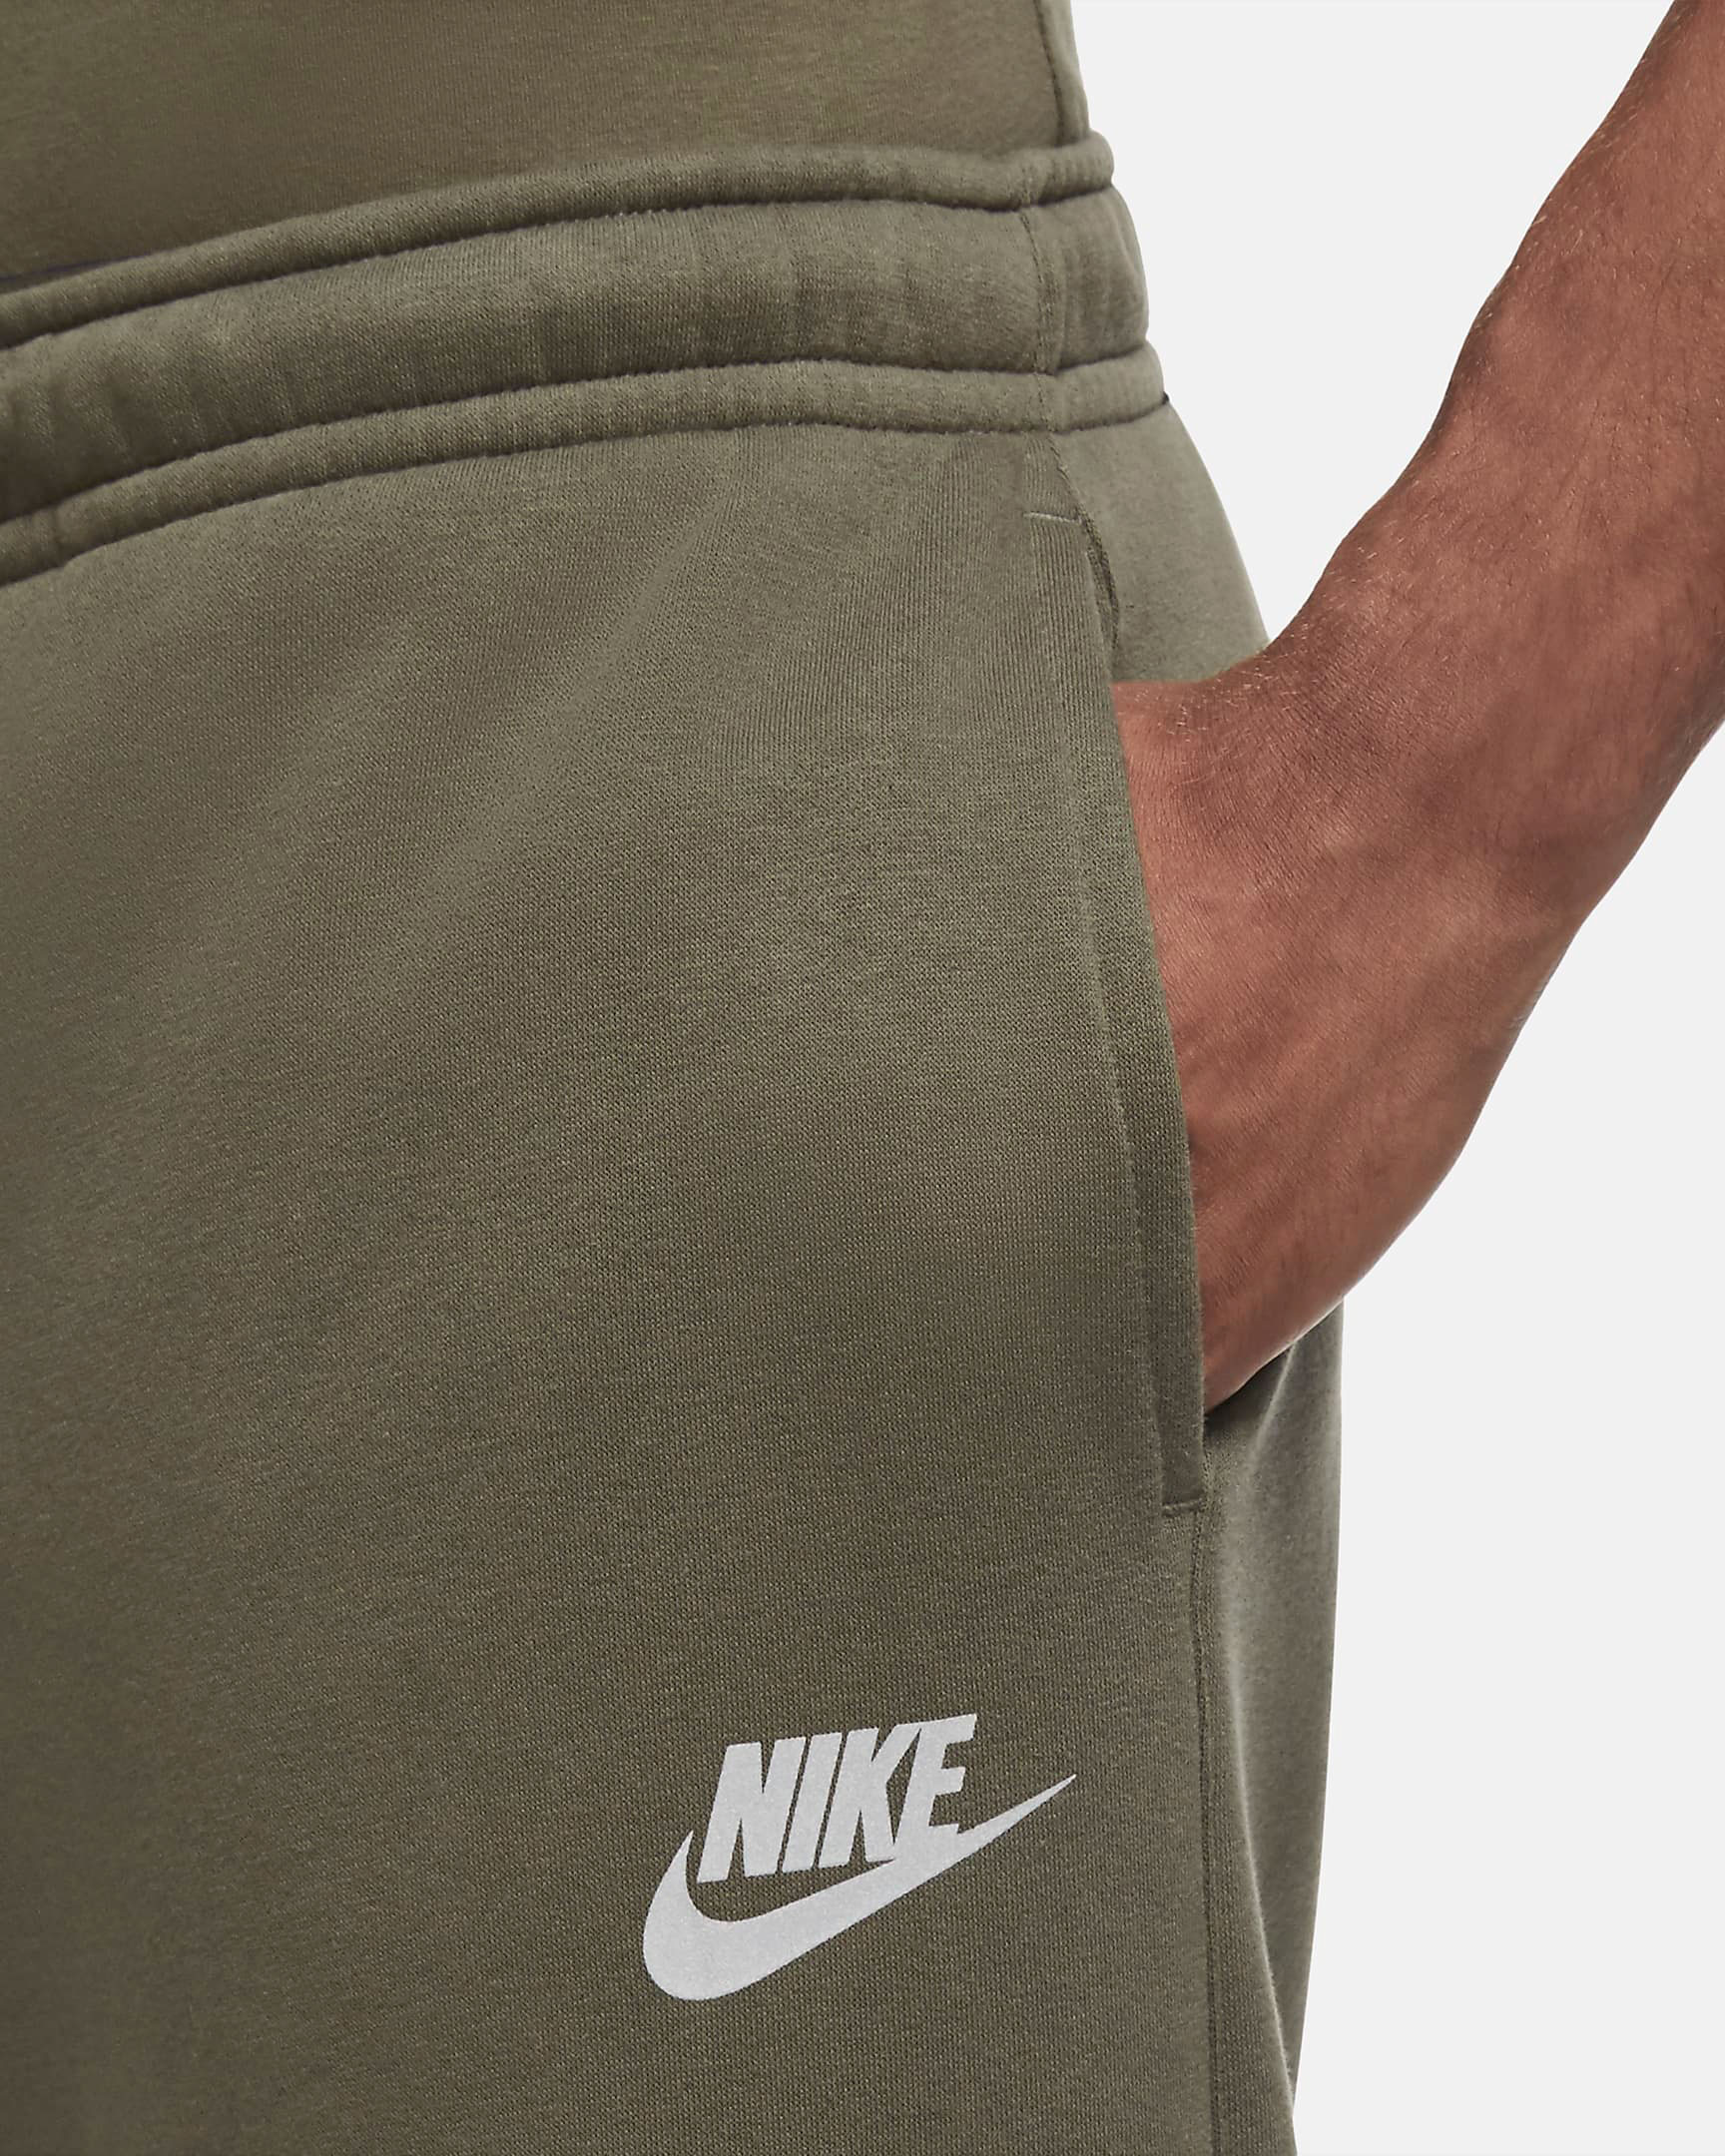 nike-club-fleece-twilight-marsh-green-reflective-pants